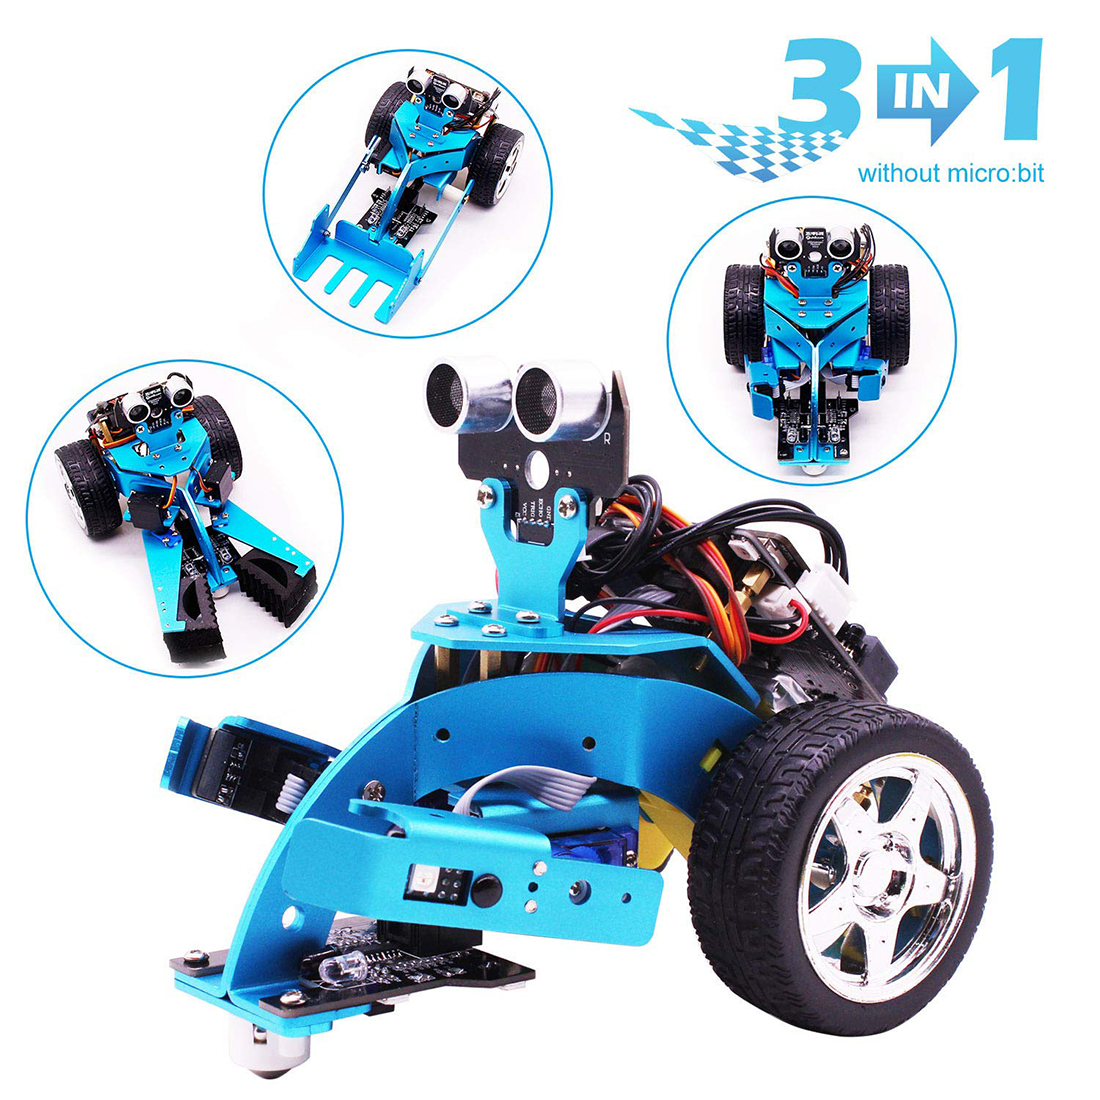 3 in 1 tem Steam Robot Car Toy for Micro bit BBC Mainboard Graphical Programmable Robot